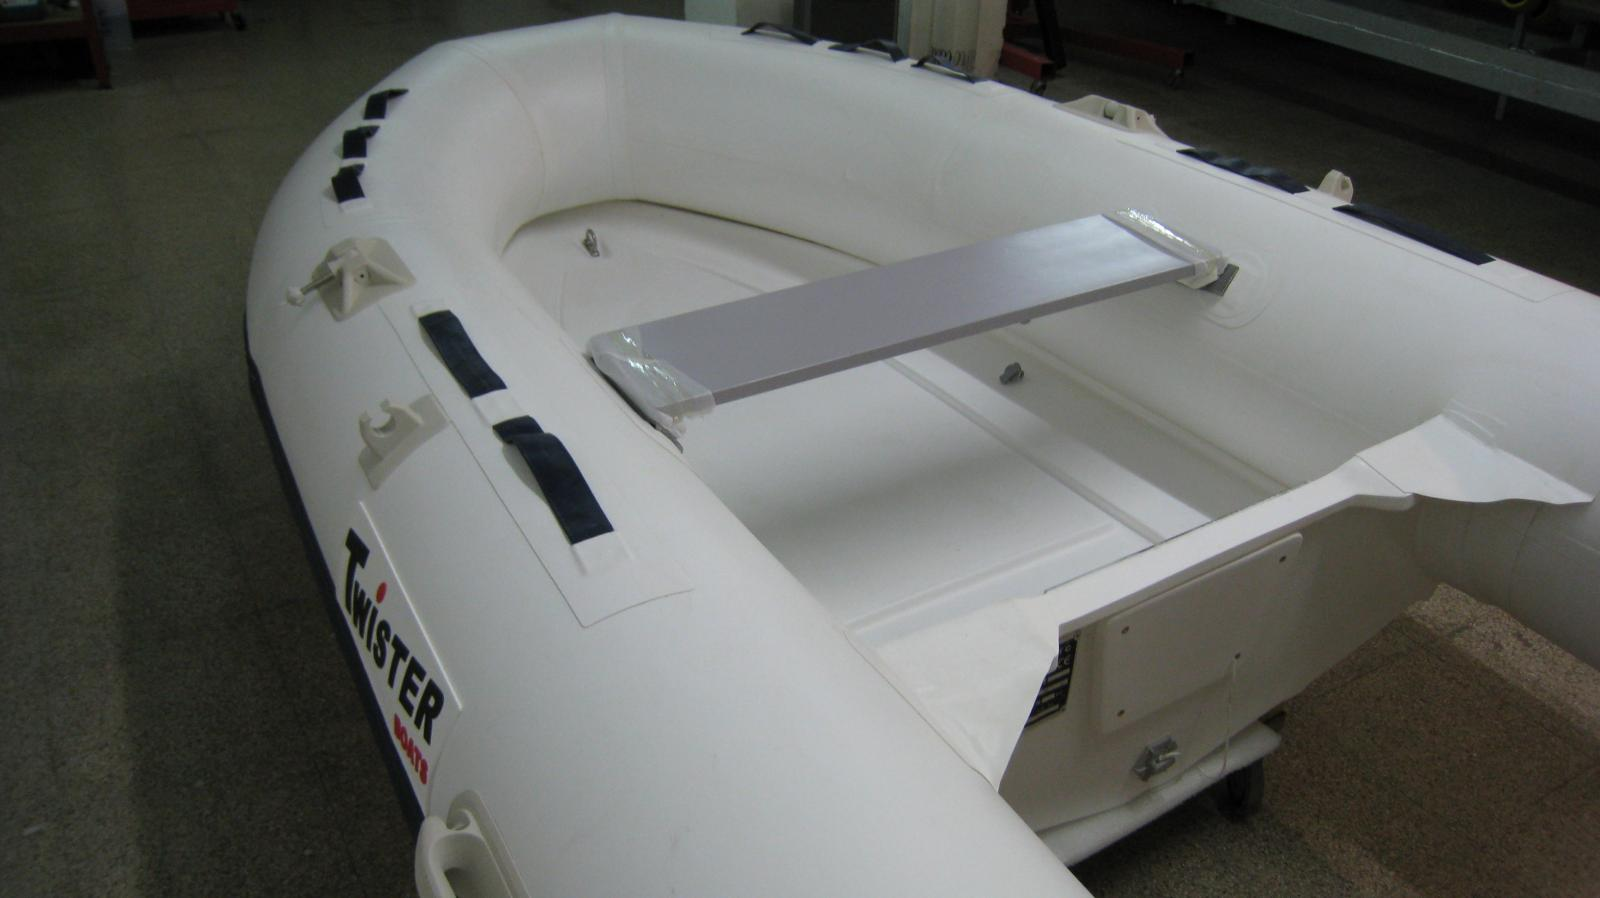 TWISTER RIB 270 + SUZUKI DF 6 AS